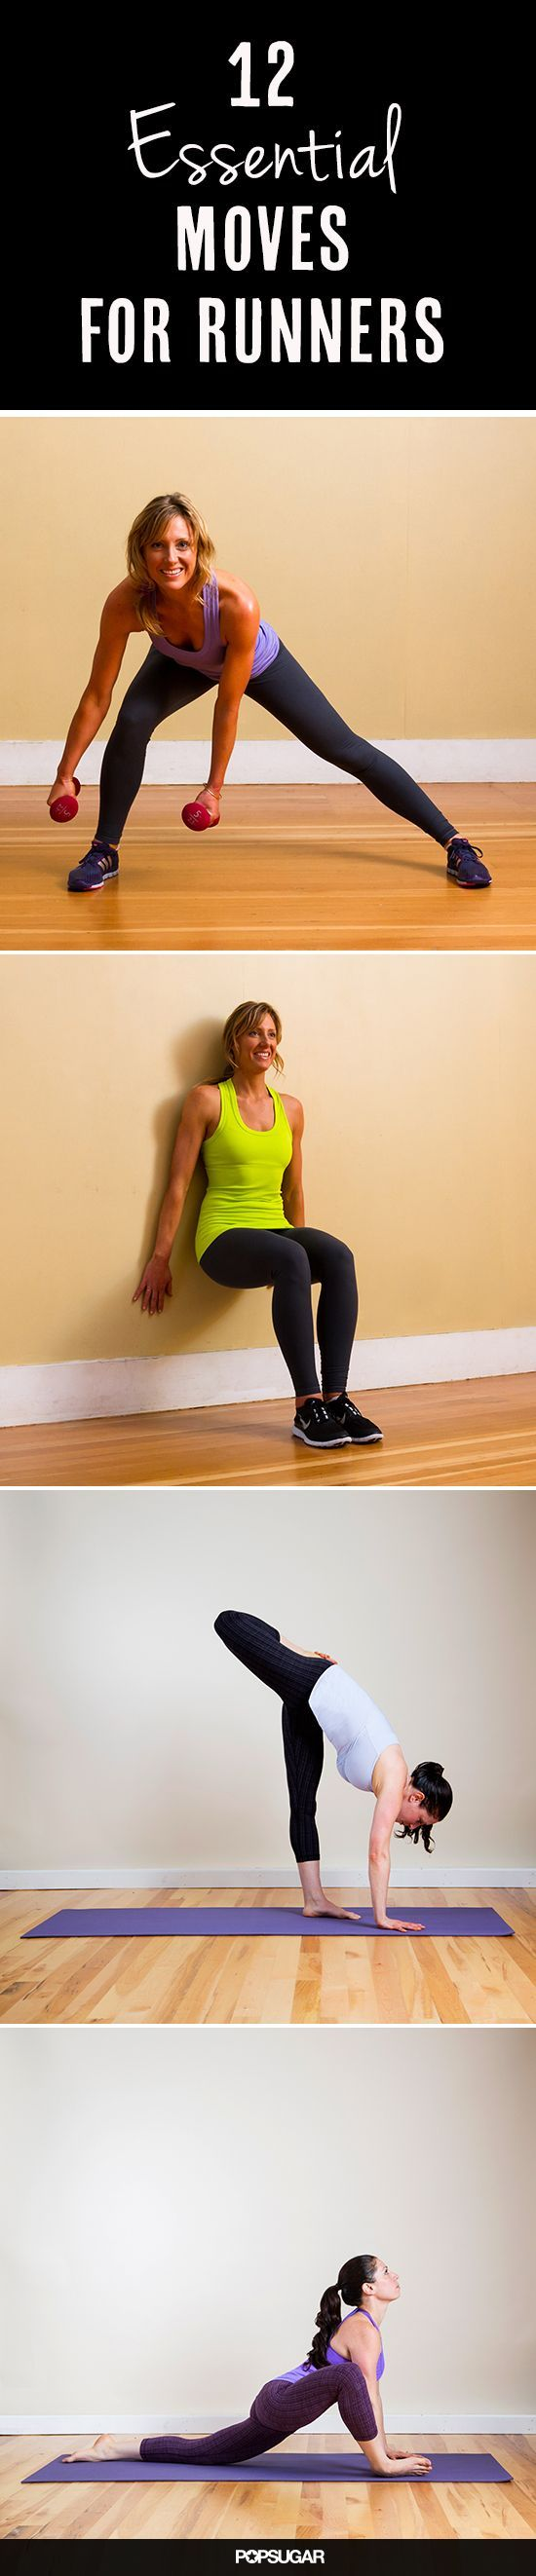 12 Essential Moves for Runners | Moves to try for runners and aspiring runners. #youresopretty